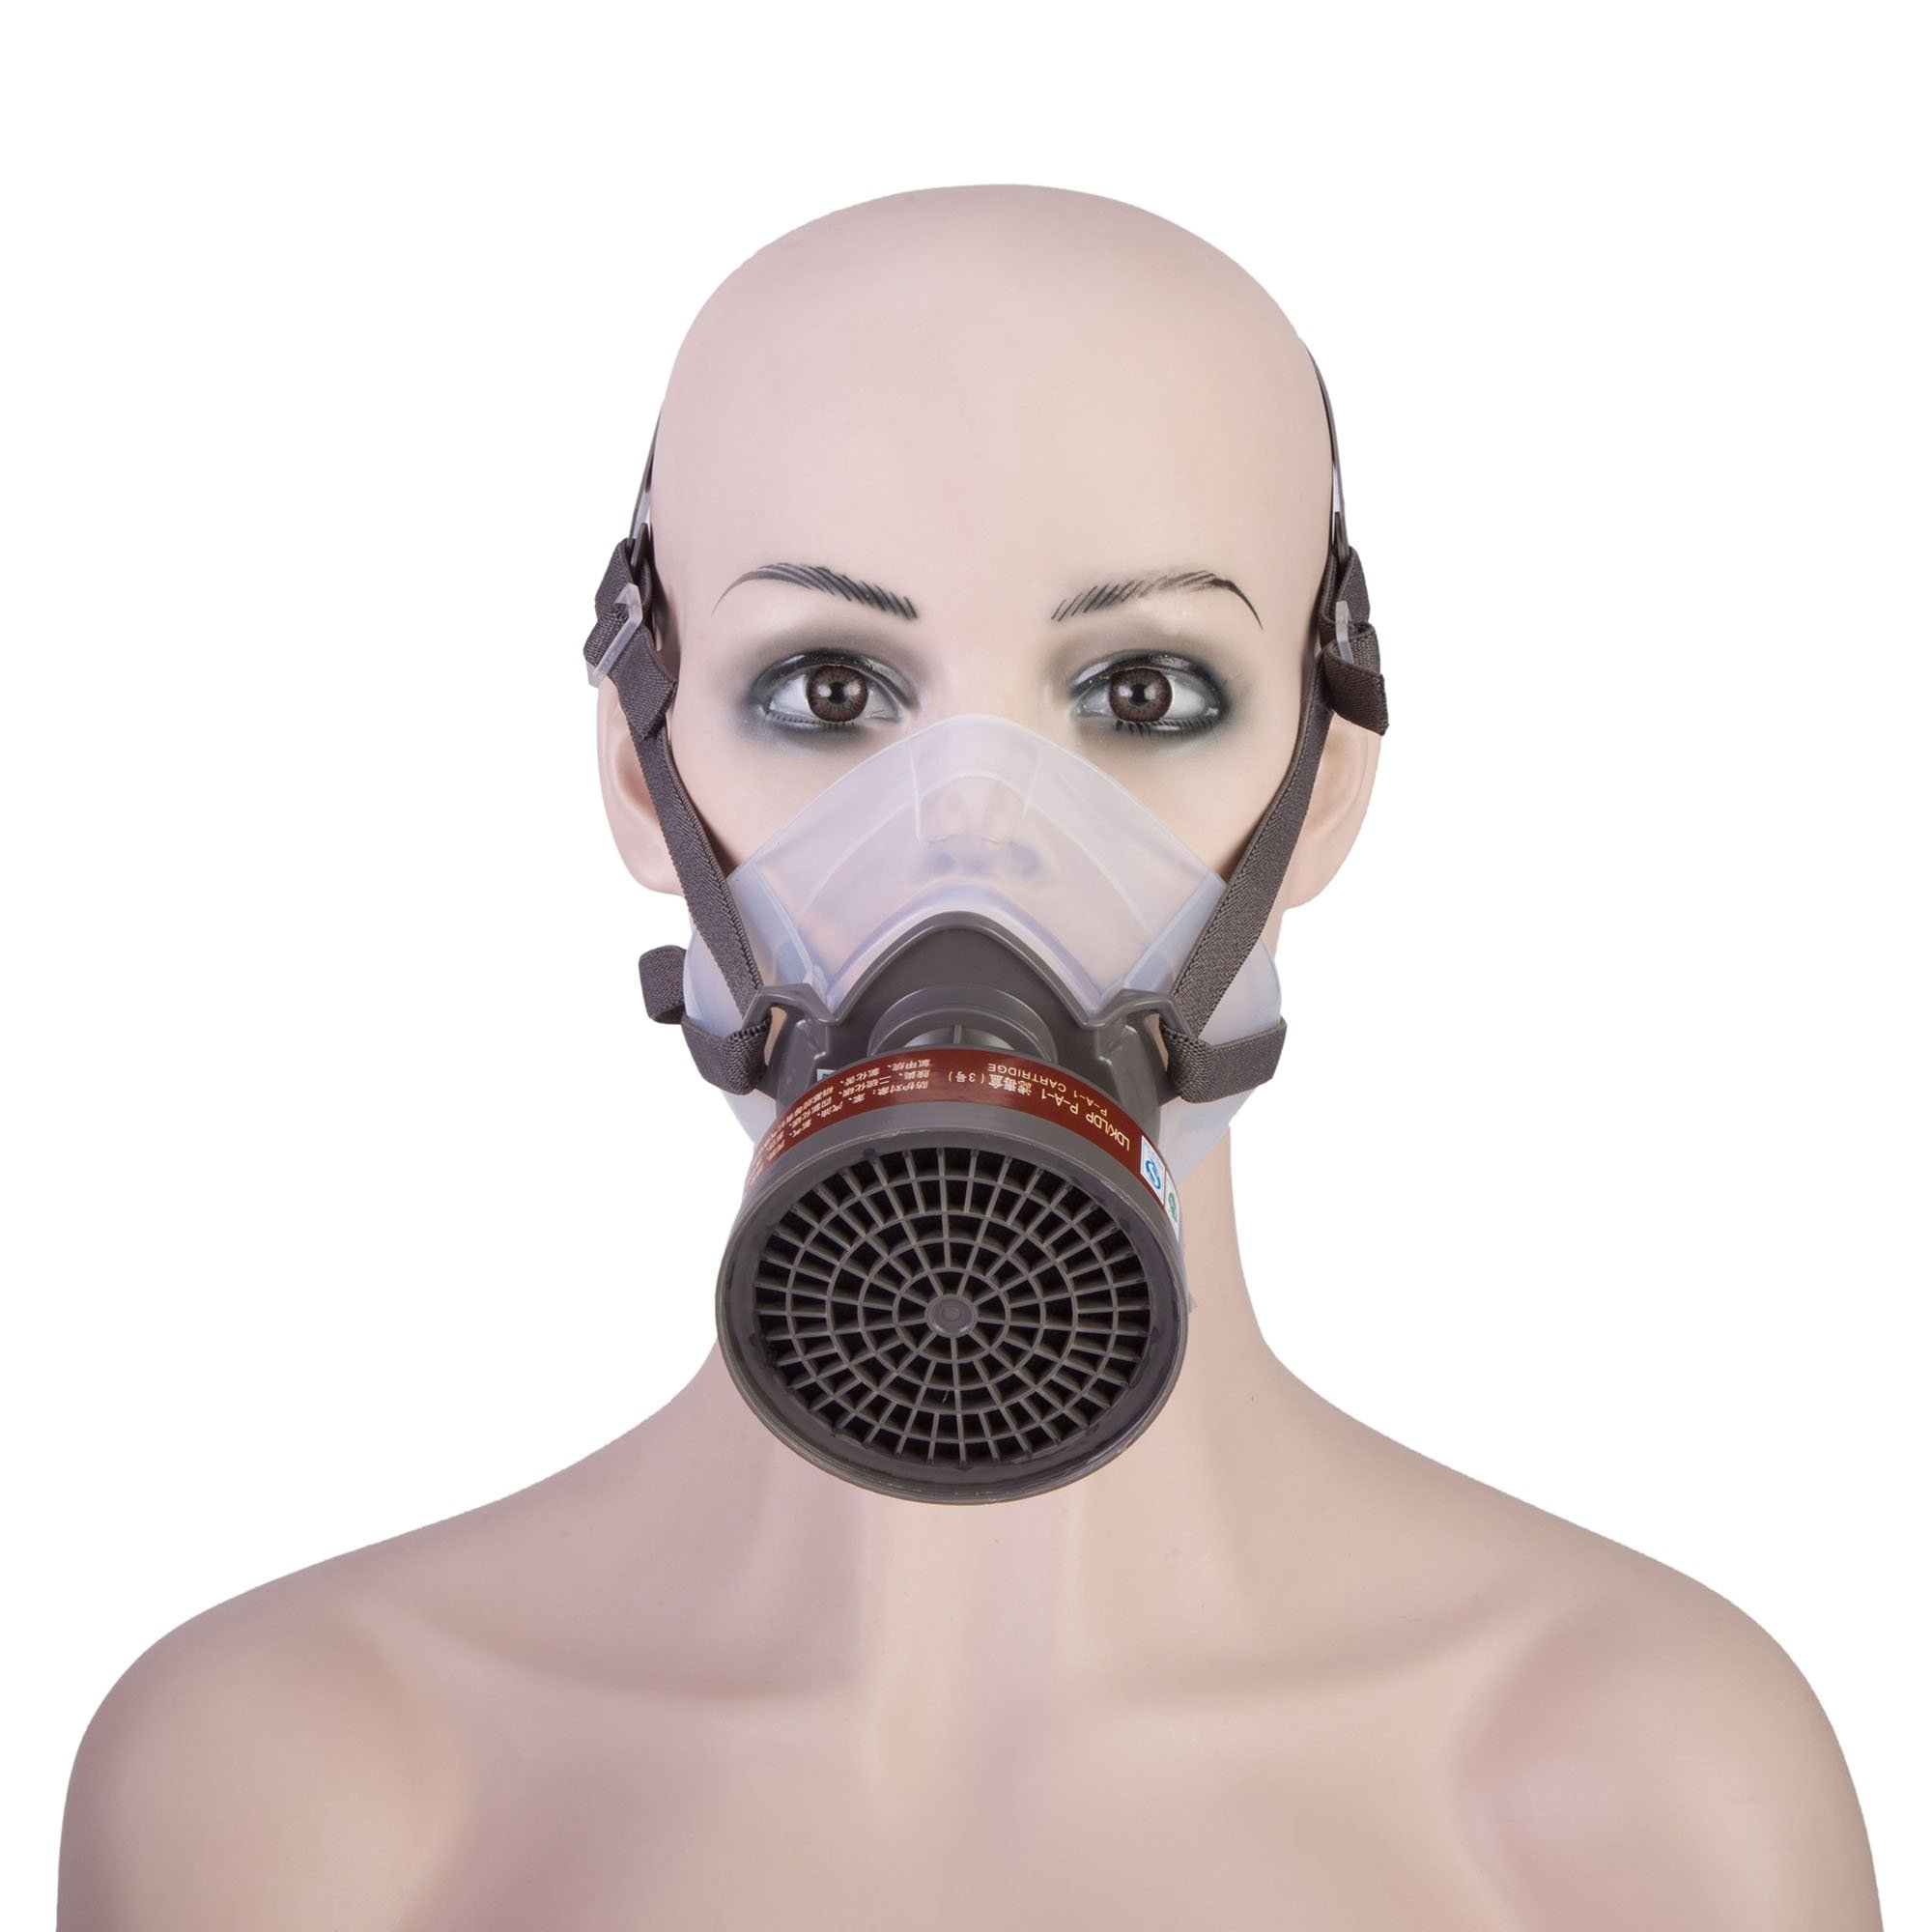 Holulo Half Facepiece Safety Respirator Industrial Gas Chemical Anti-Dust Paint and Safety Mask with Adjustable Straps